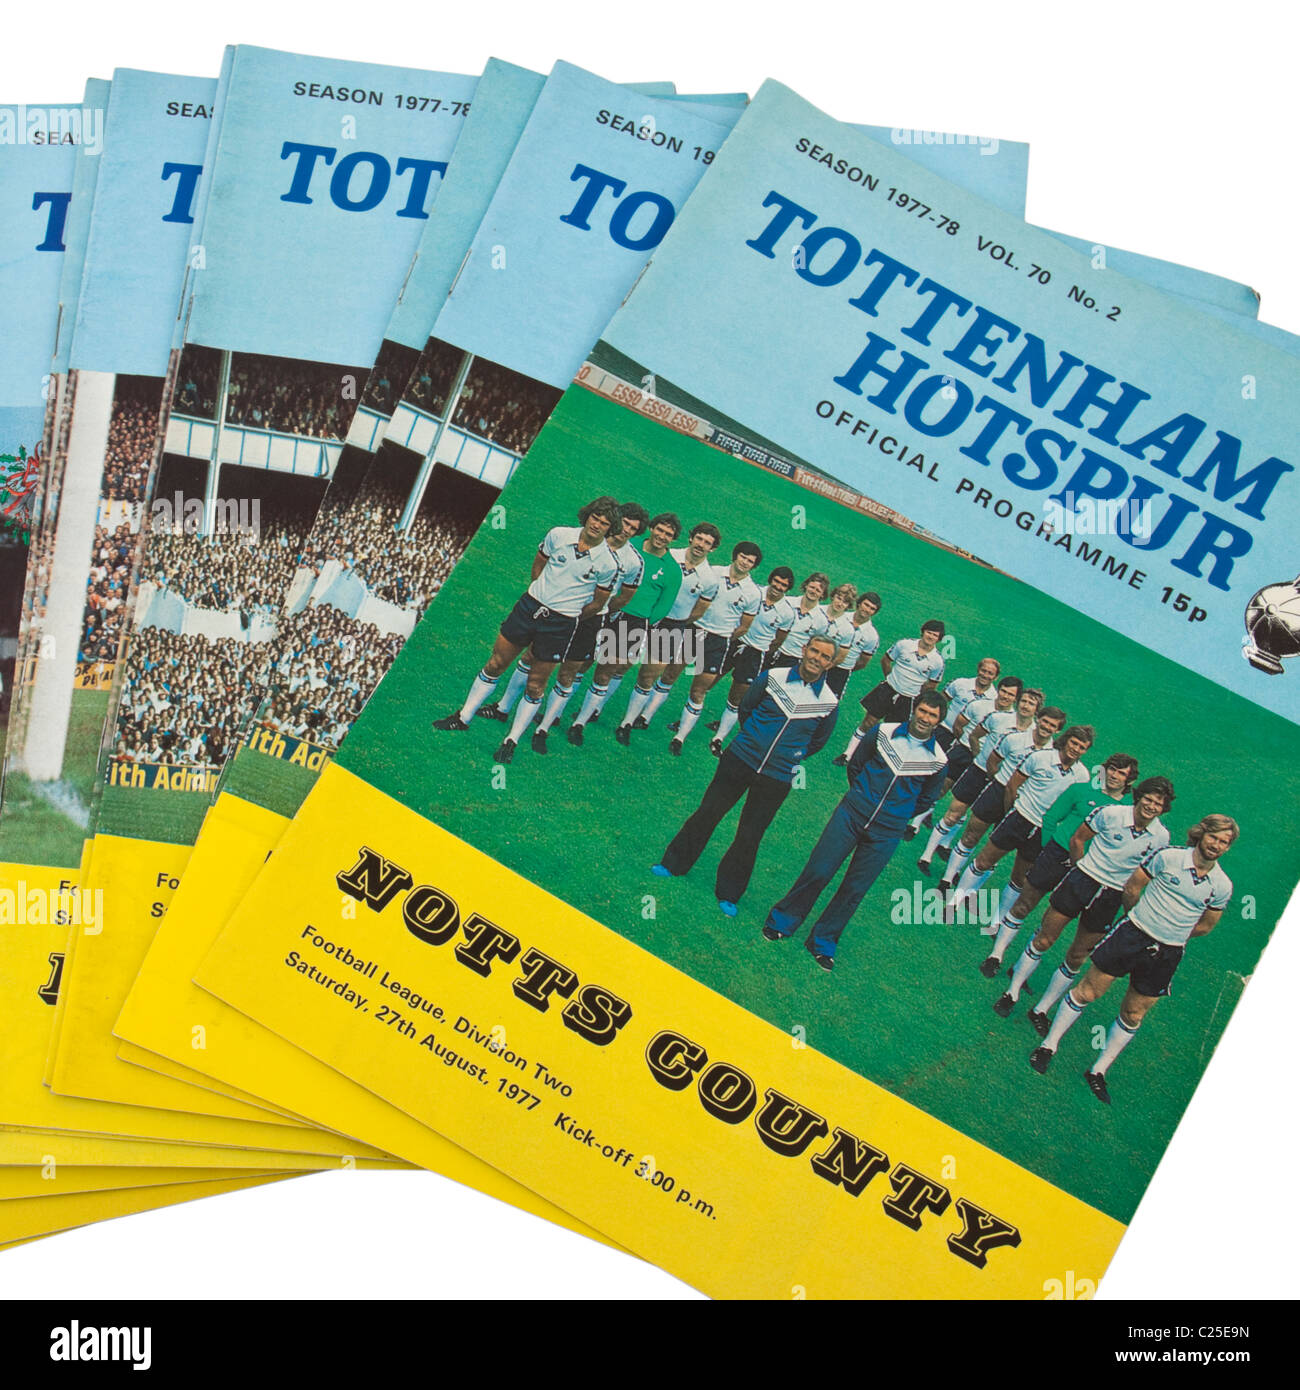 Collection of 1970's Tottenham Hotspur football / soccer match programmes - Stock Image